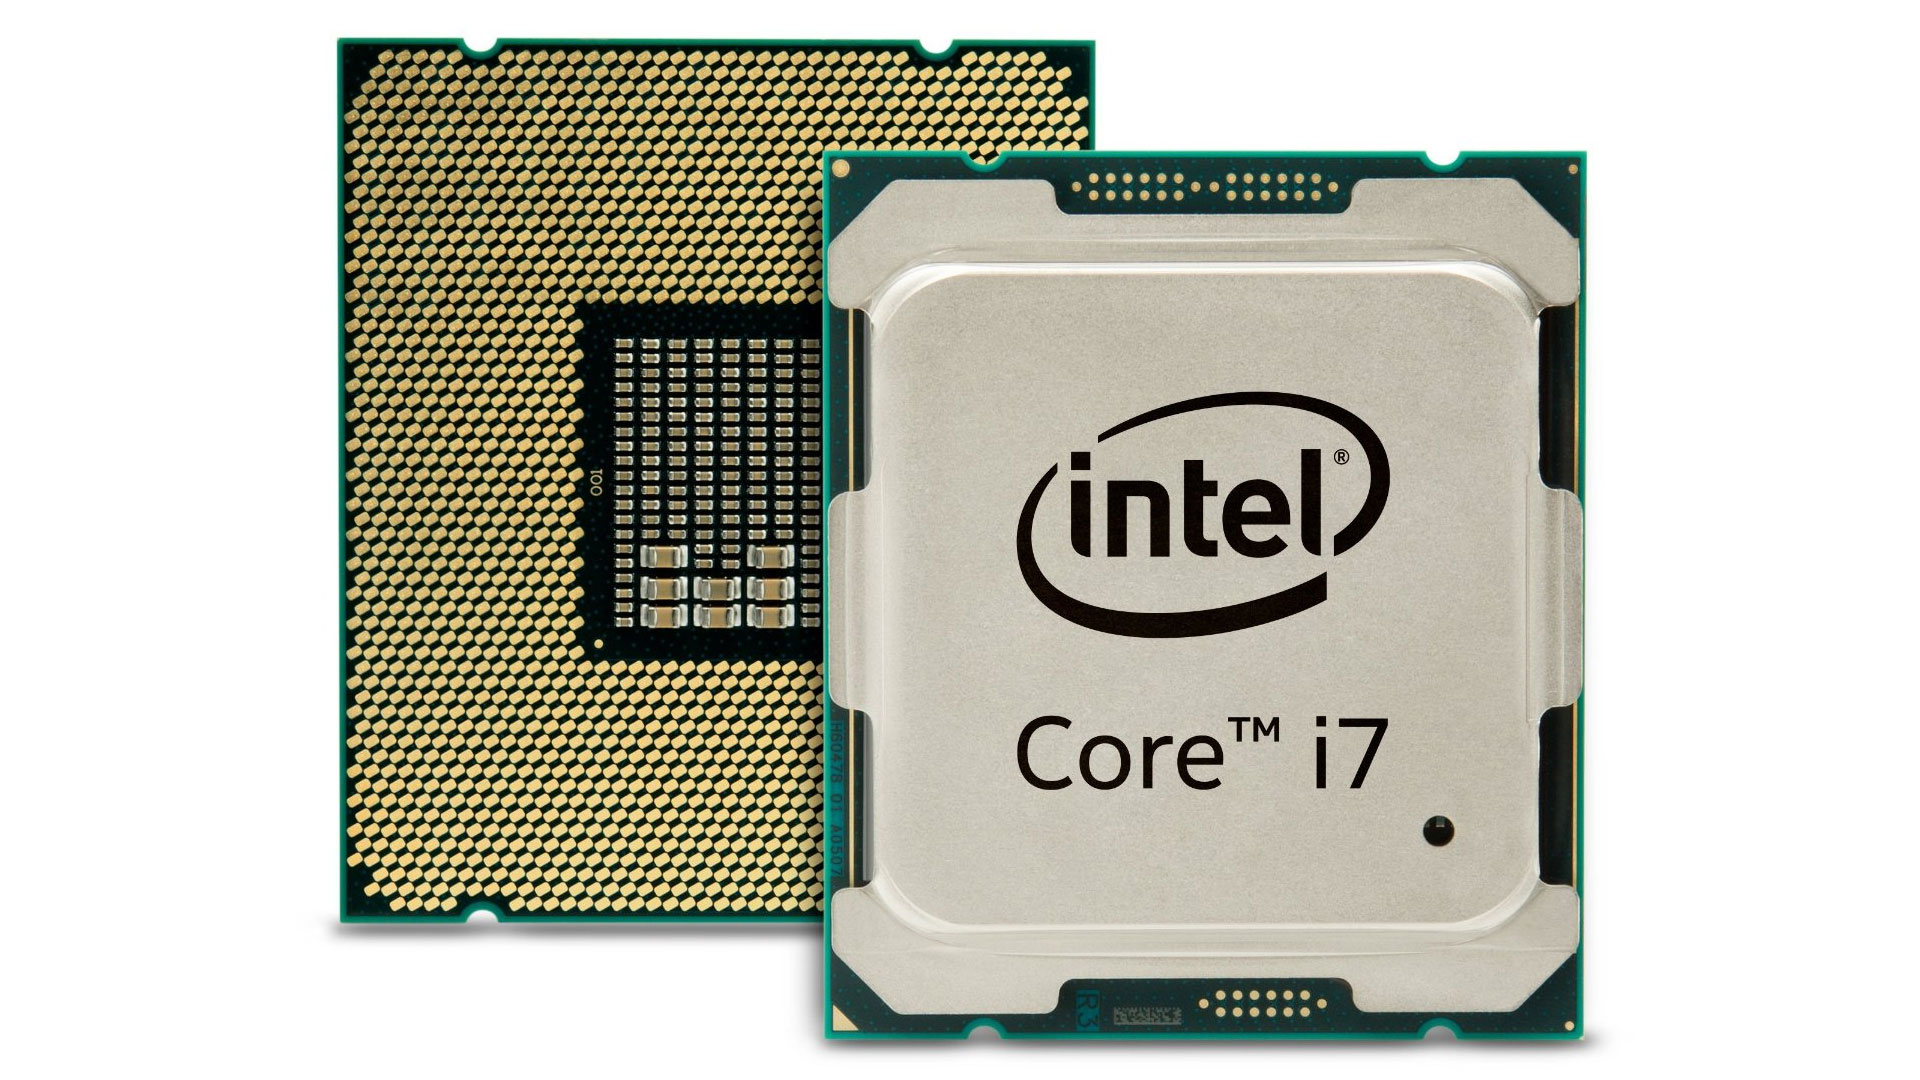 Intel and Microsoft assess the performance impact of